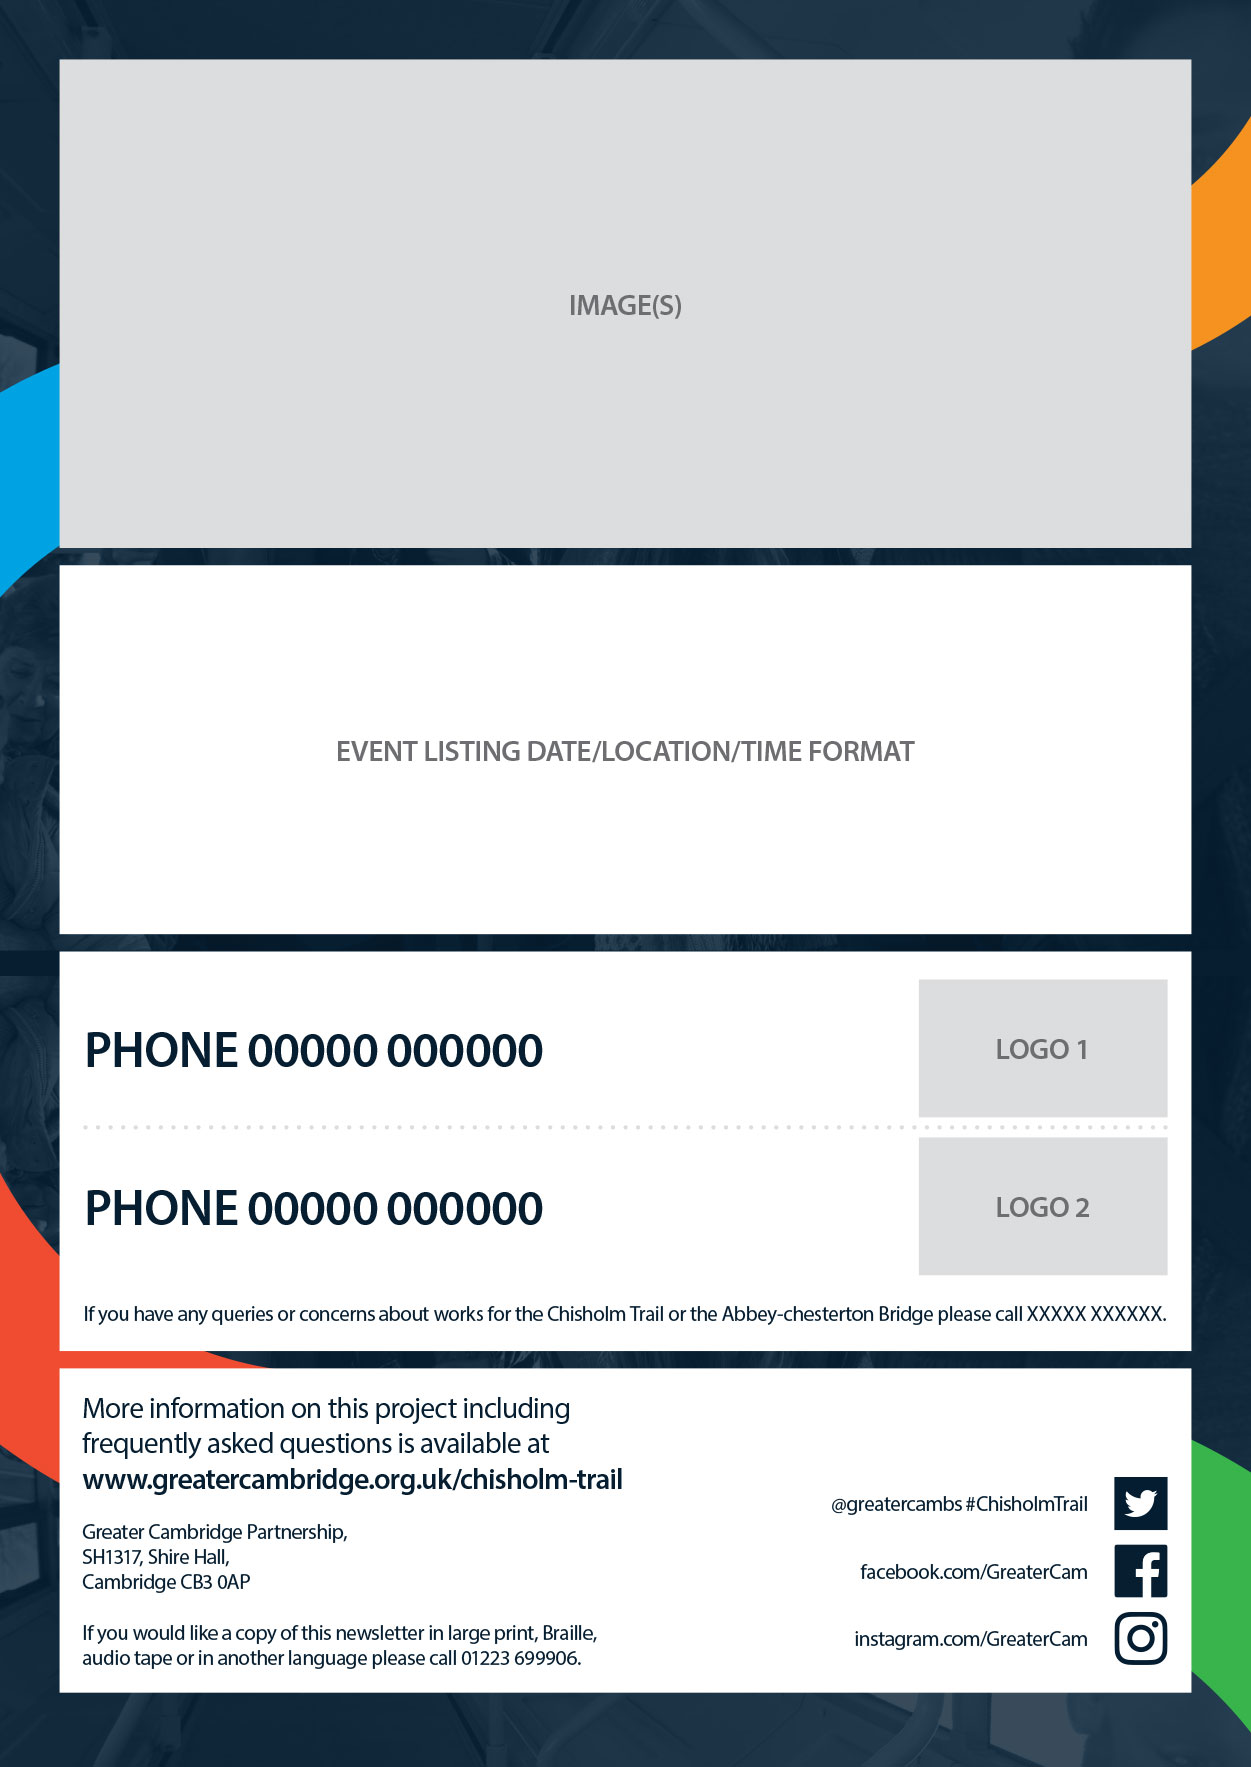 GCP-Newsletter-template-3.jpg